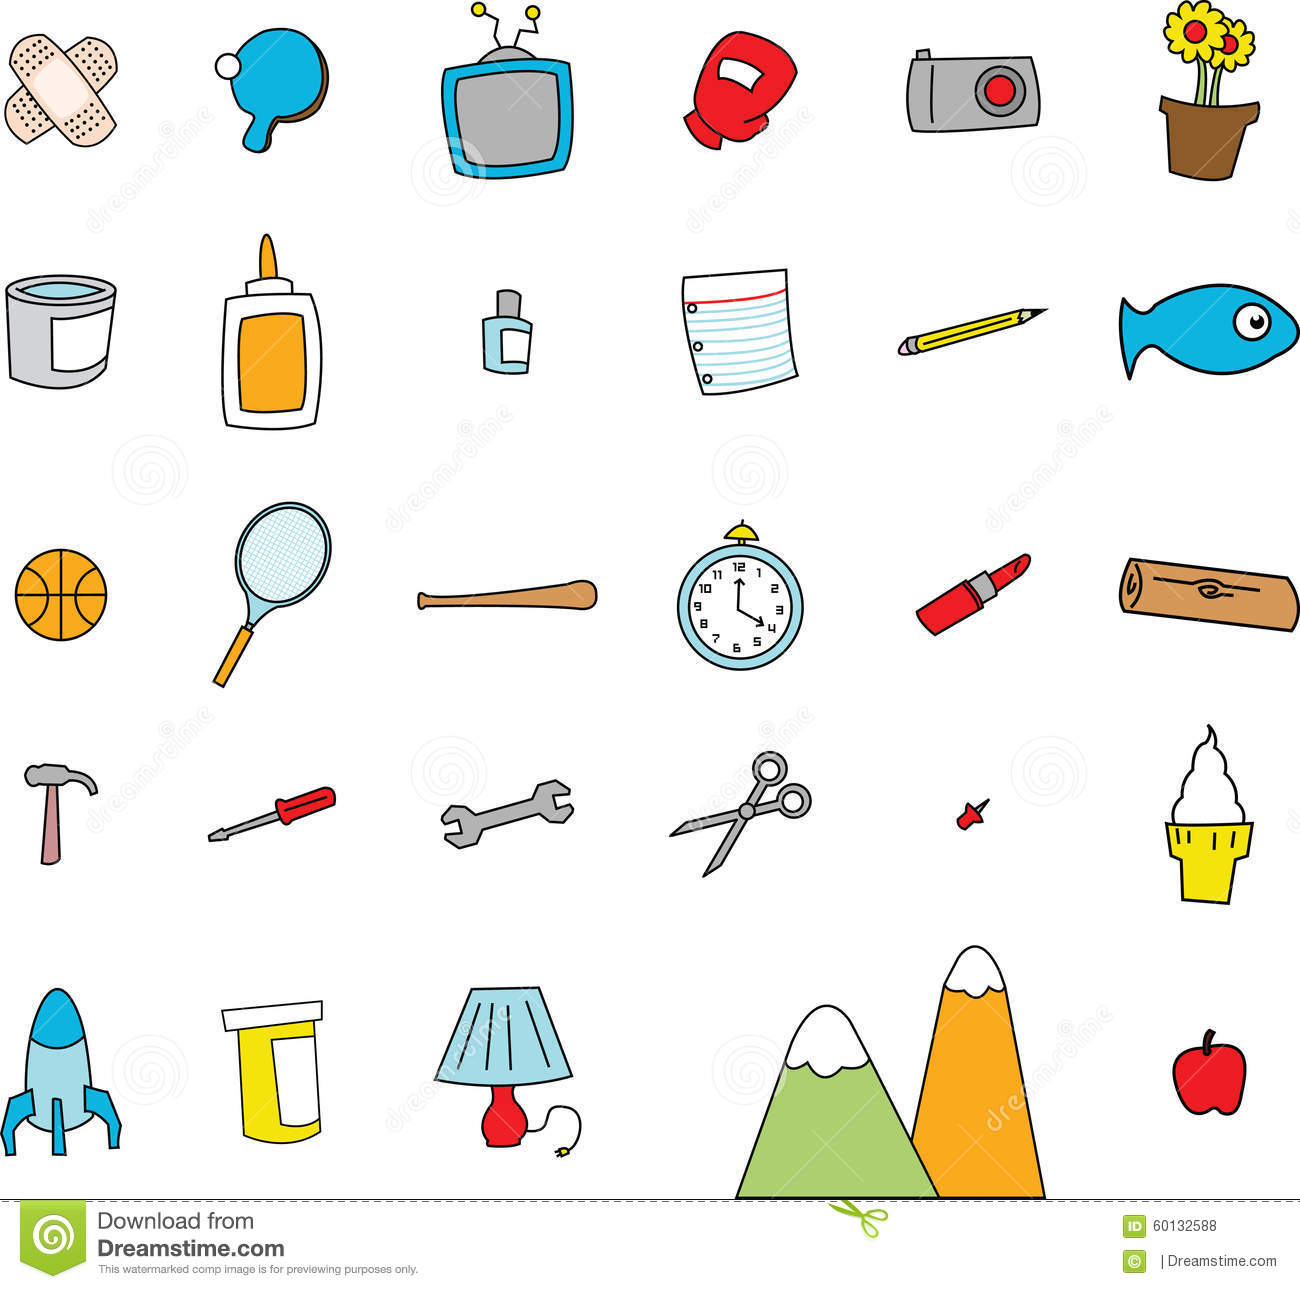 Childlike doodles of everyday objects stock vector image for Minimalist household items